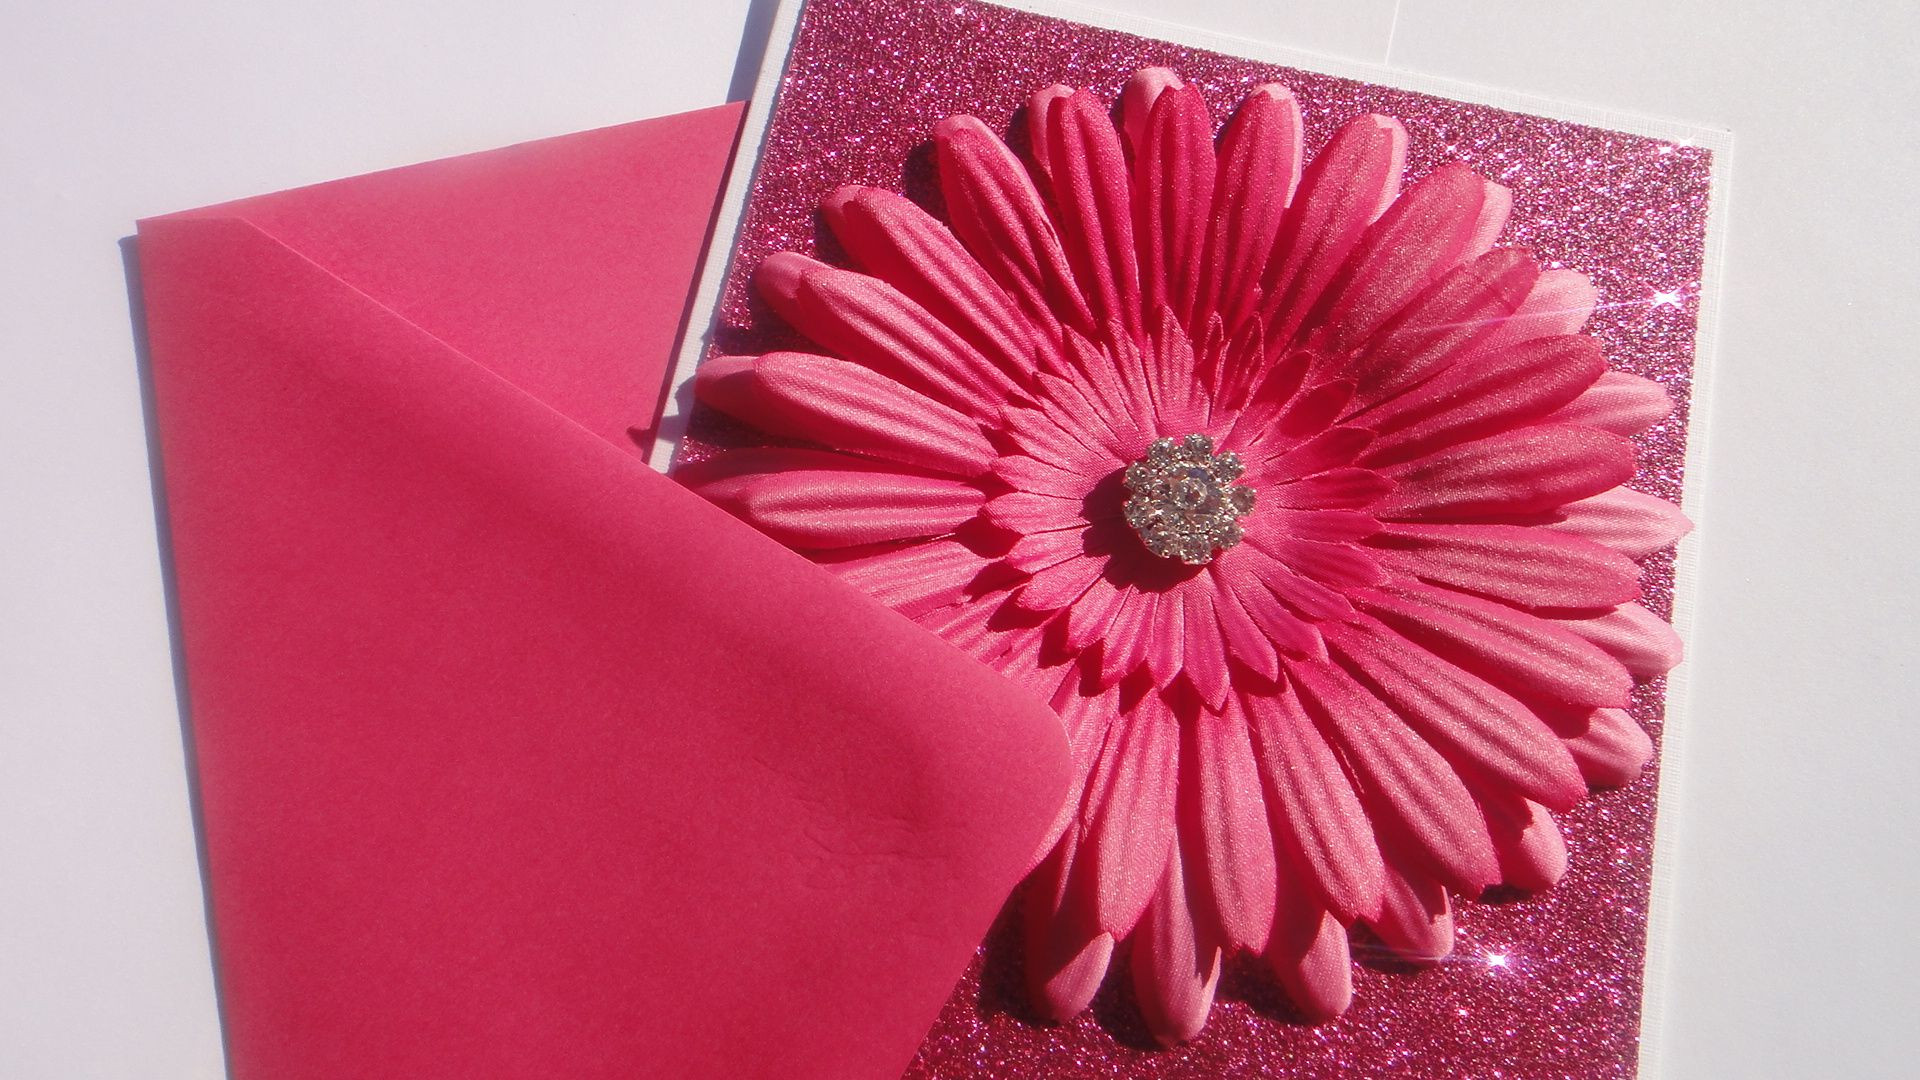 This is part of my Sparkle Flower Bloom Collection of greeting Cards